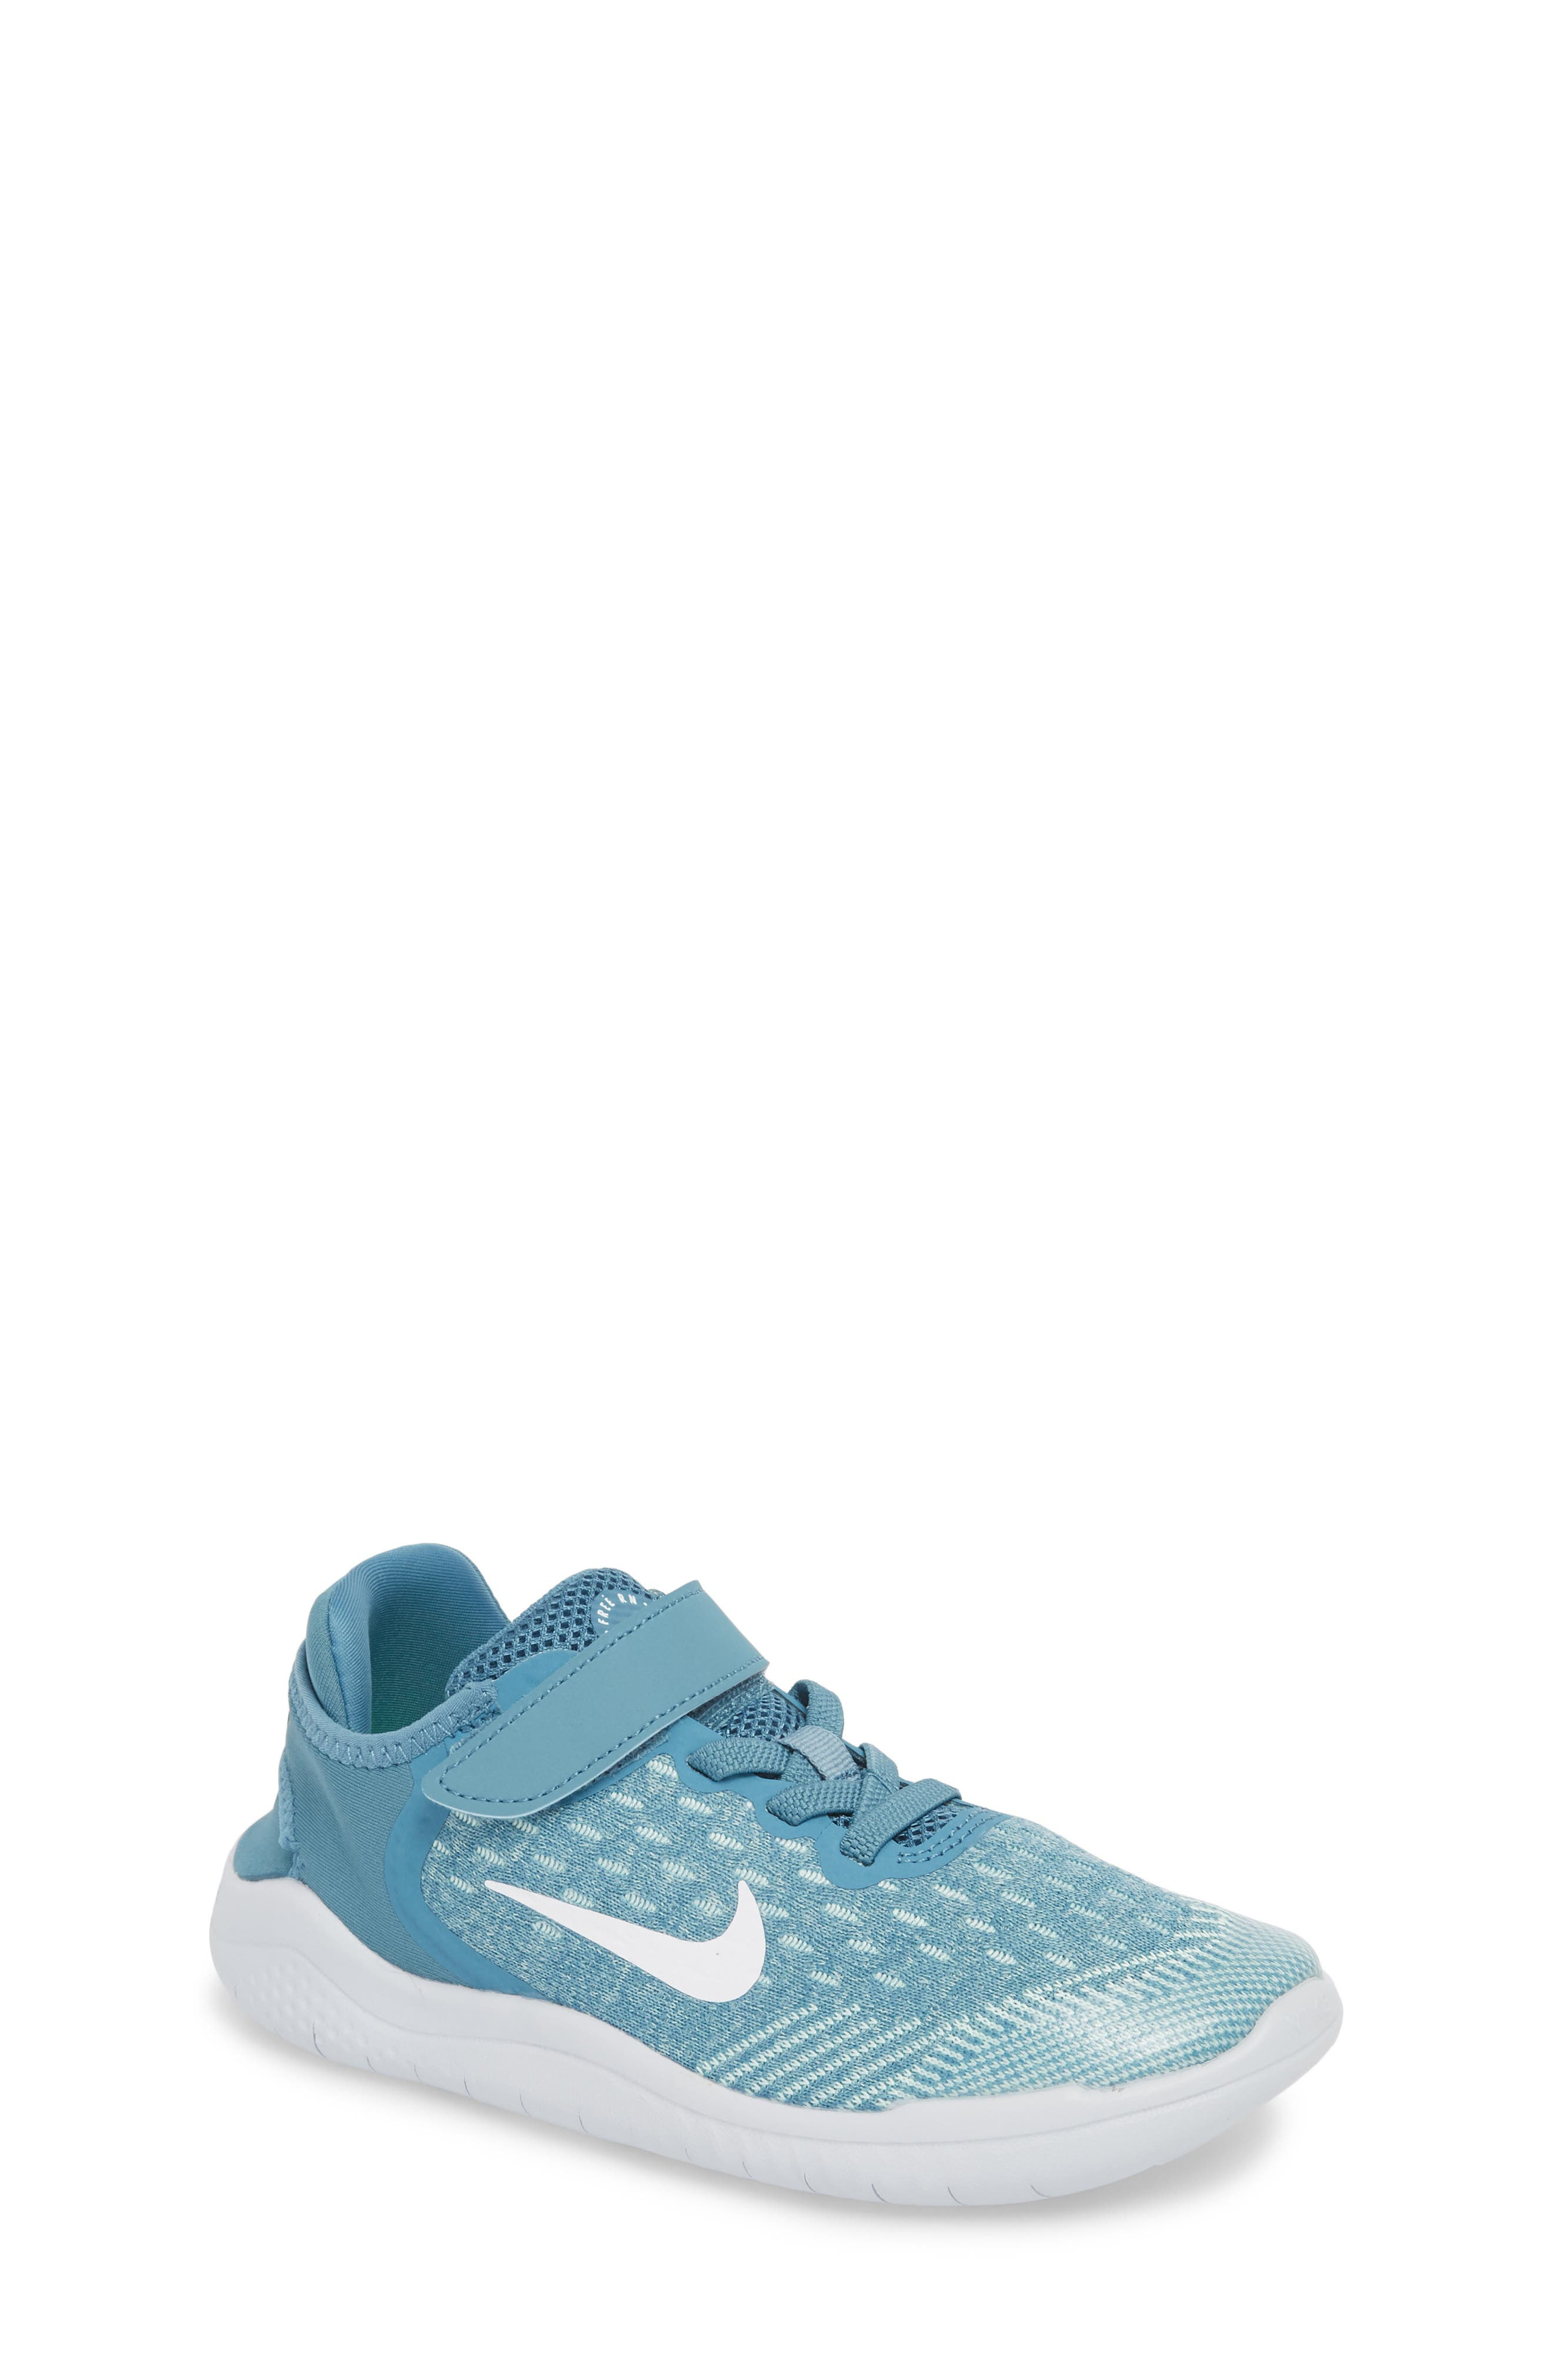 Nike Free RN Running Shoe (Baby, Walker, Toddler & Little Kid)